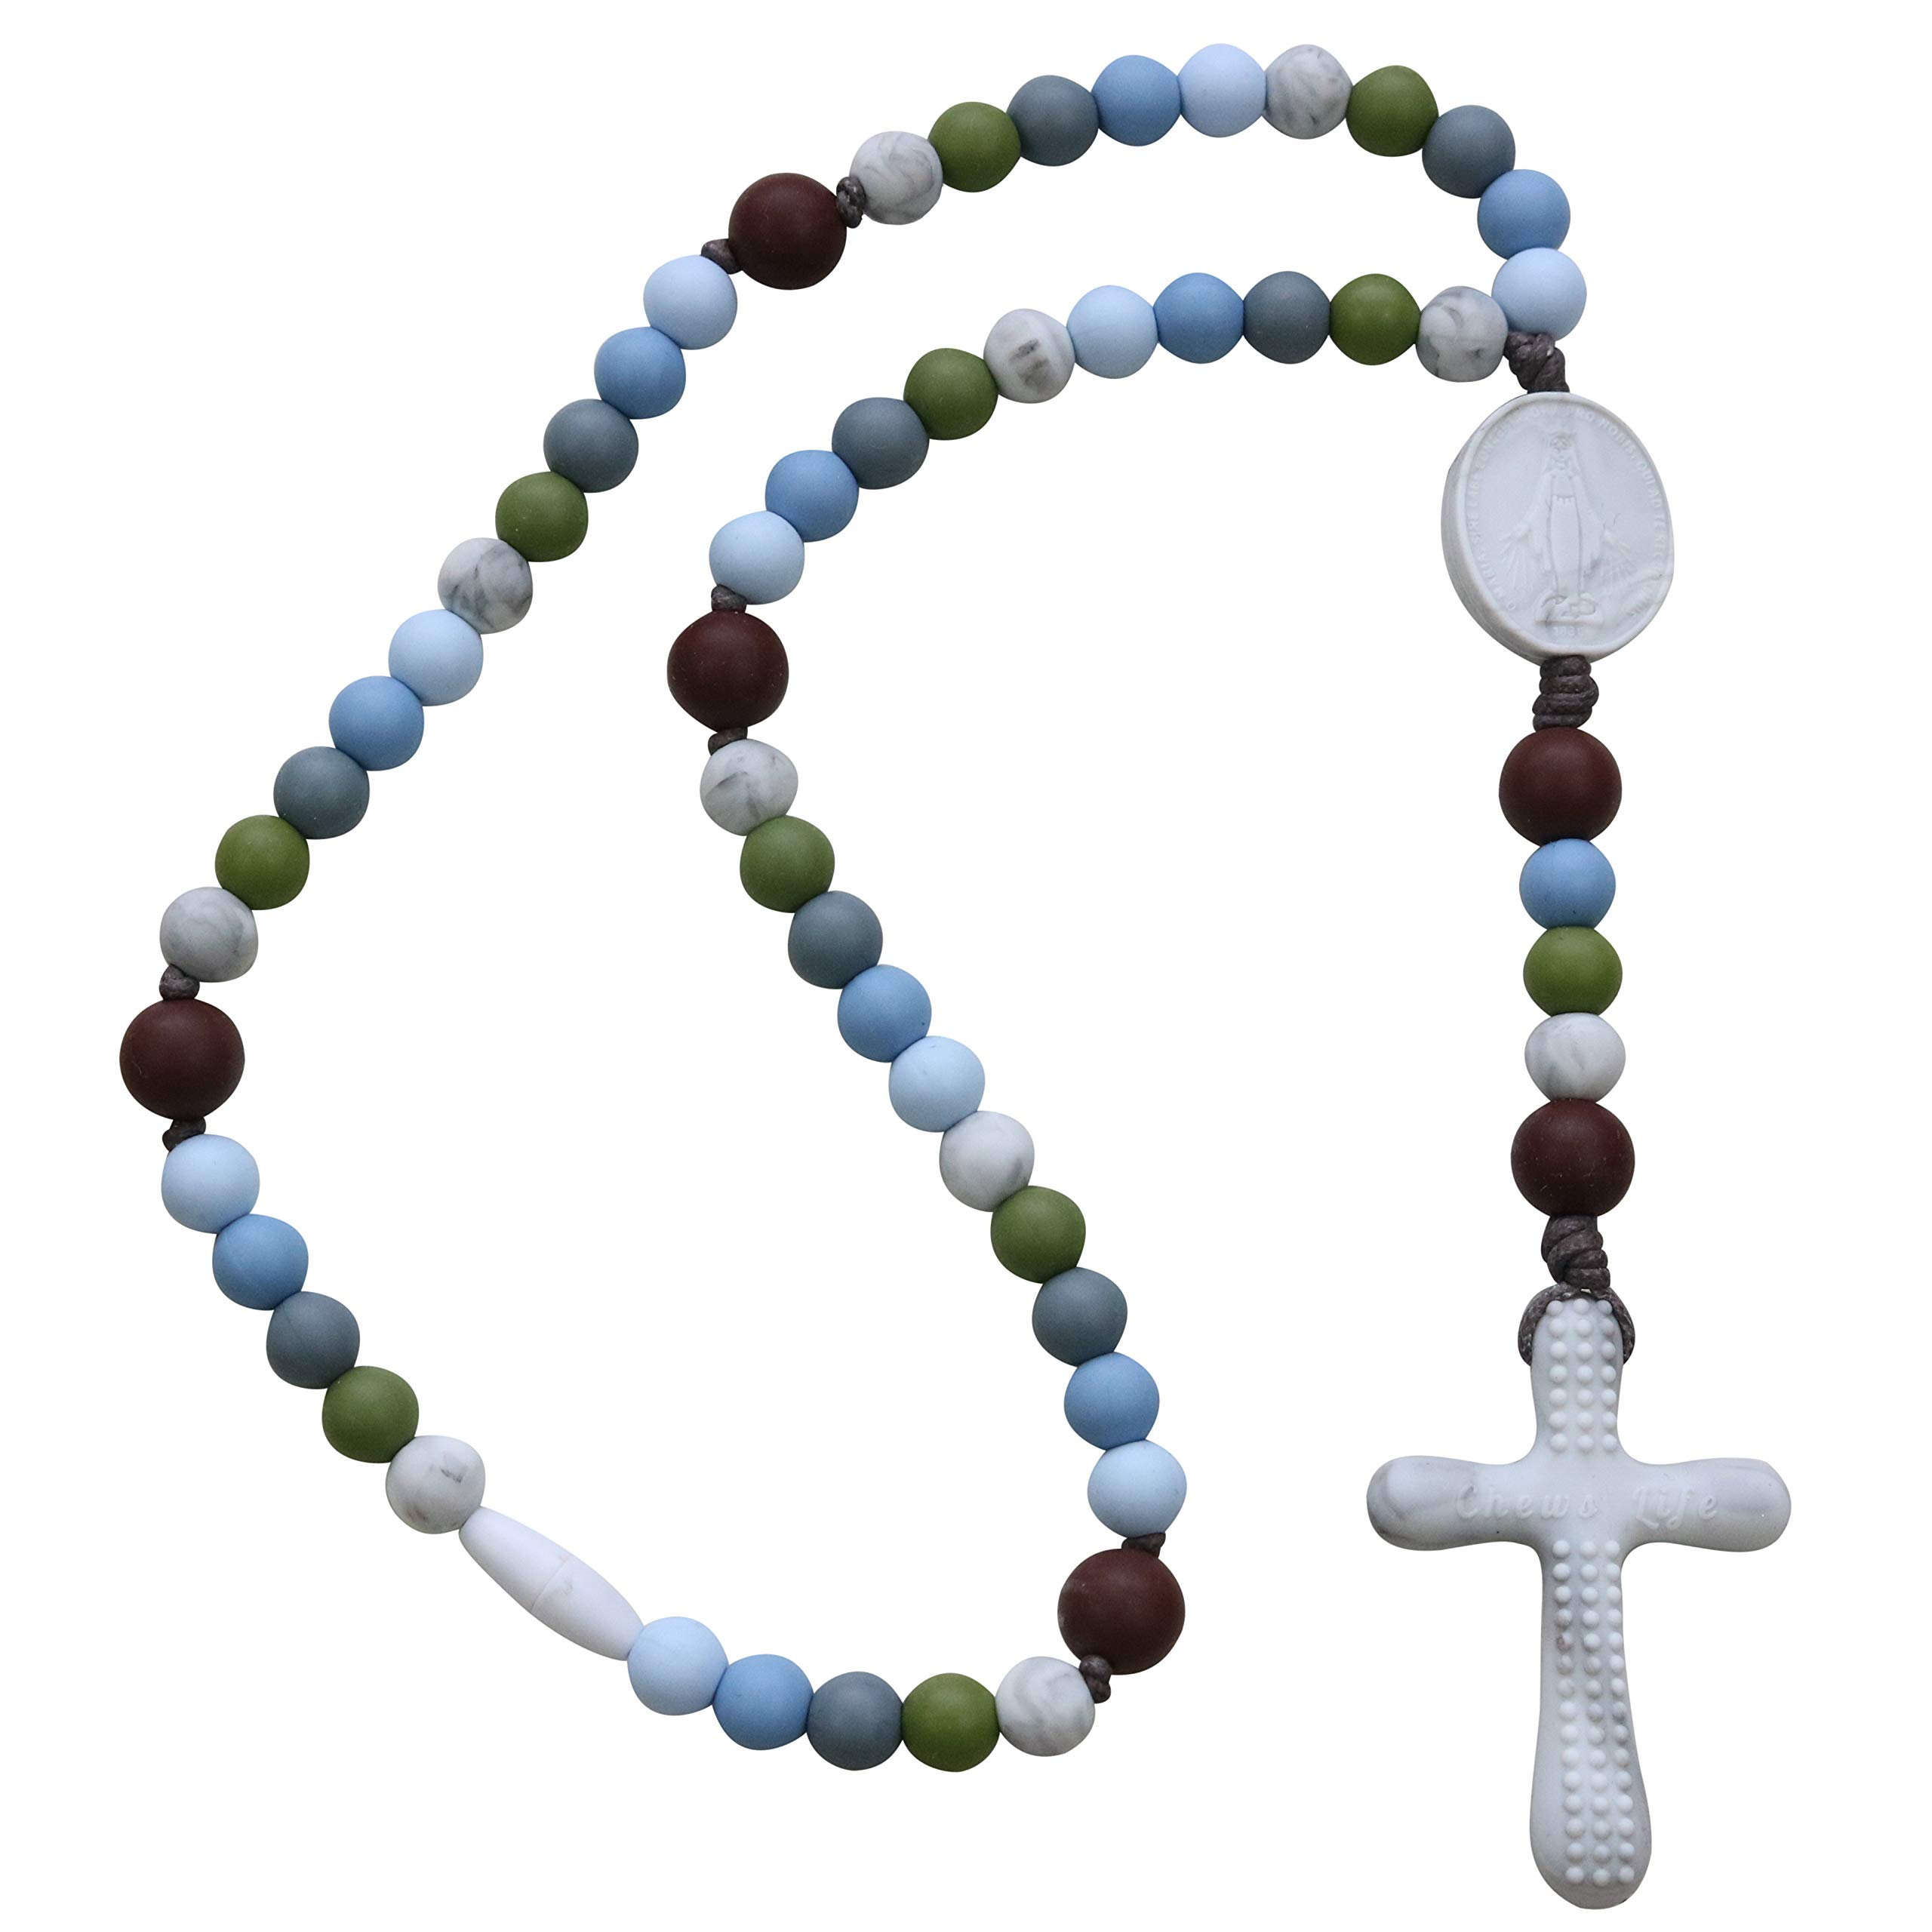 Chews Life - Teething Rosary Beads - Baptism Gift & Mass Toy for Catholic Girls & Boys, Handmade, Silicone Beads & Organic Cotton Cord - CPSIA Certified Safe | Versa L'Alto by Chews Life